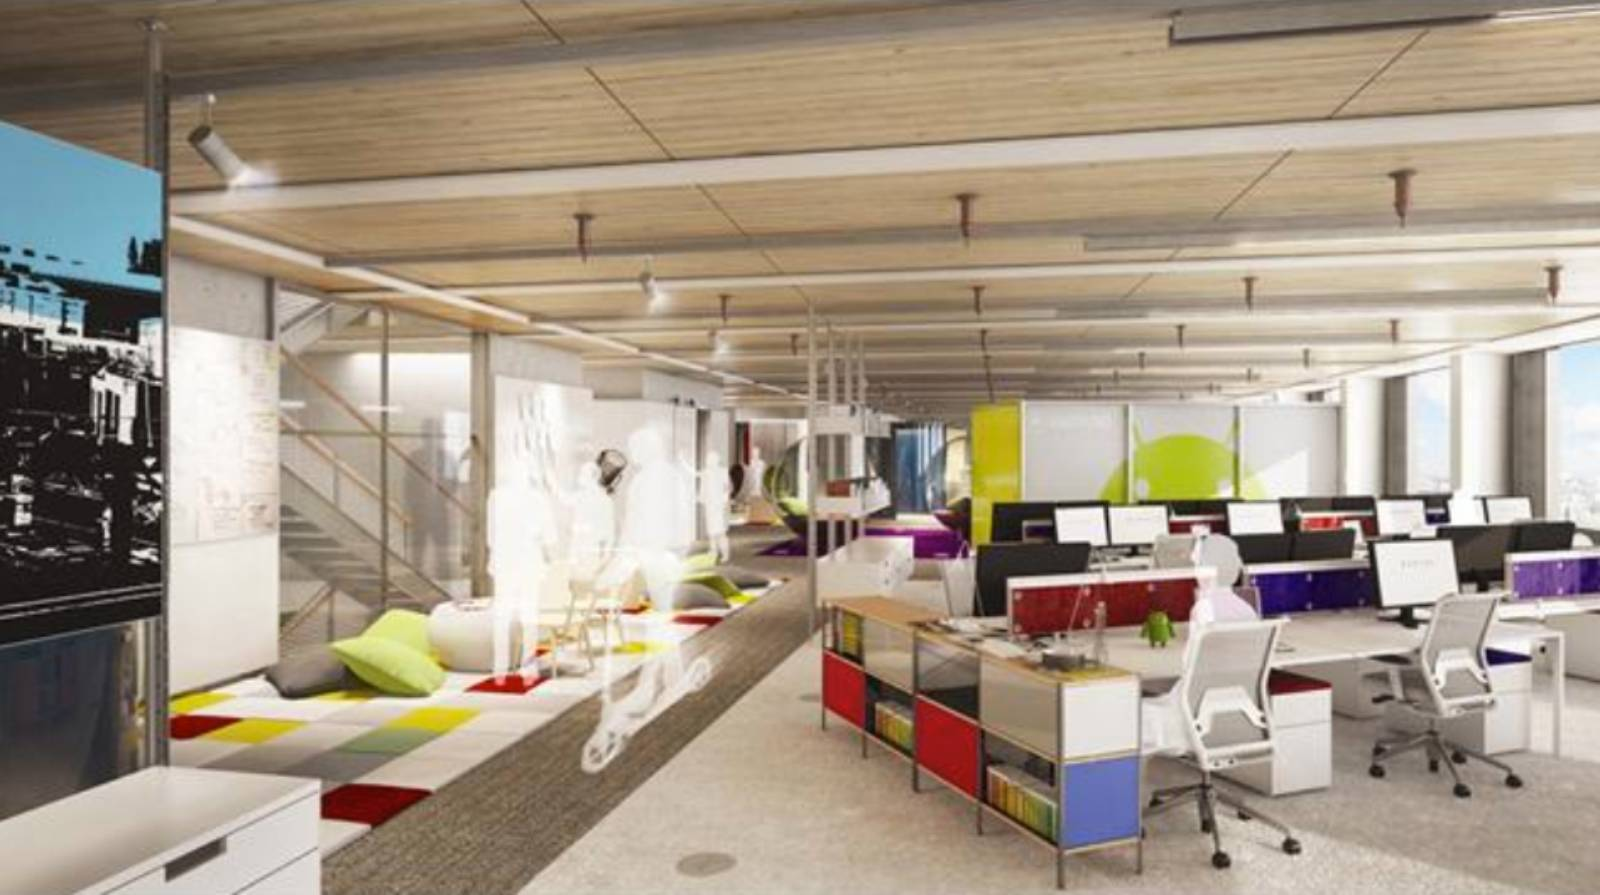 Google 39 s new headquarters by allford hall monaghan morris for Office design google